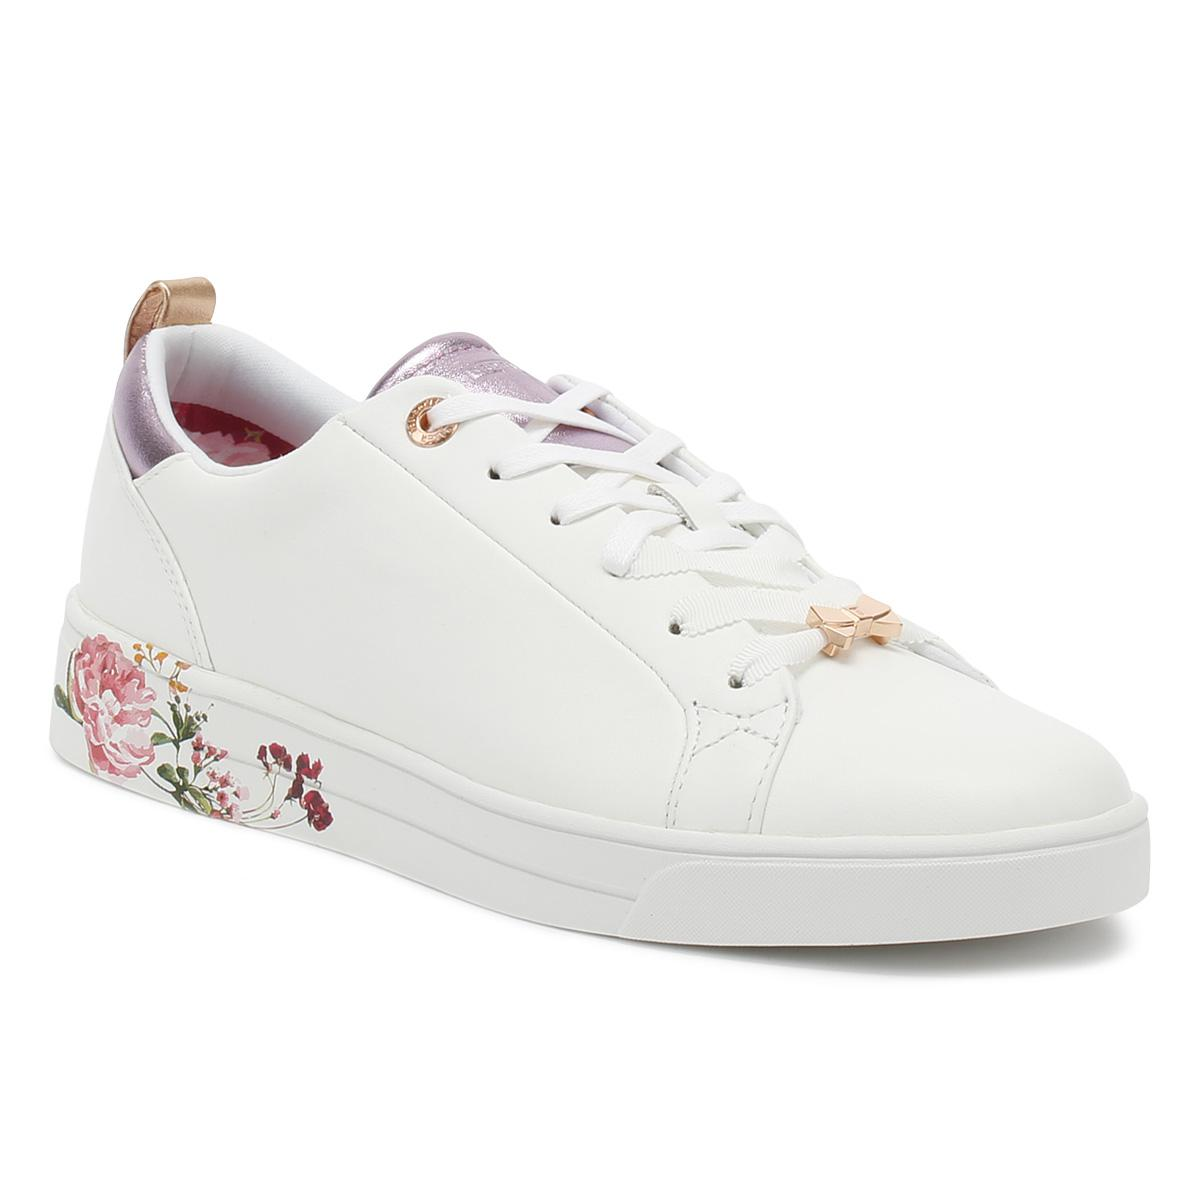 e799df619 Lyst - Ted Baker Womens White   Serenity Giellip Trainers Women s ...